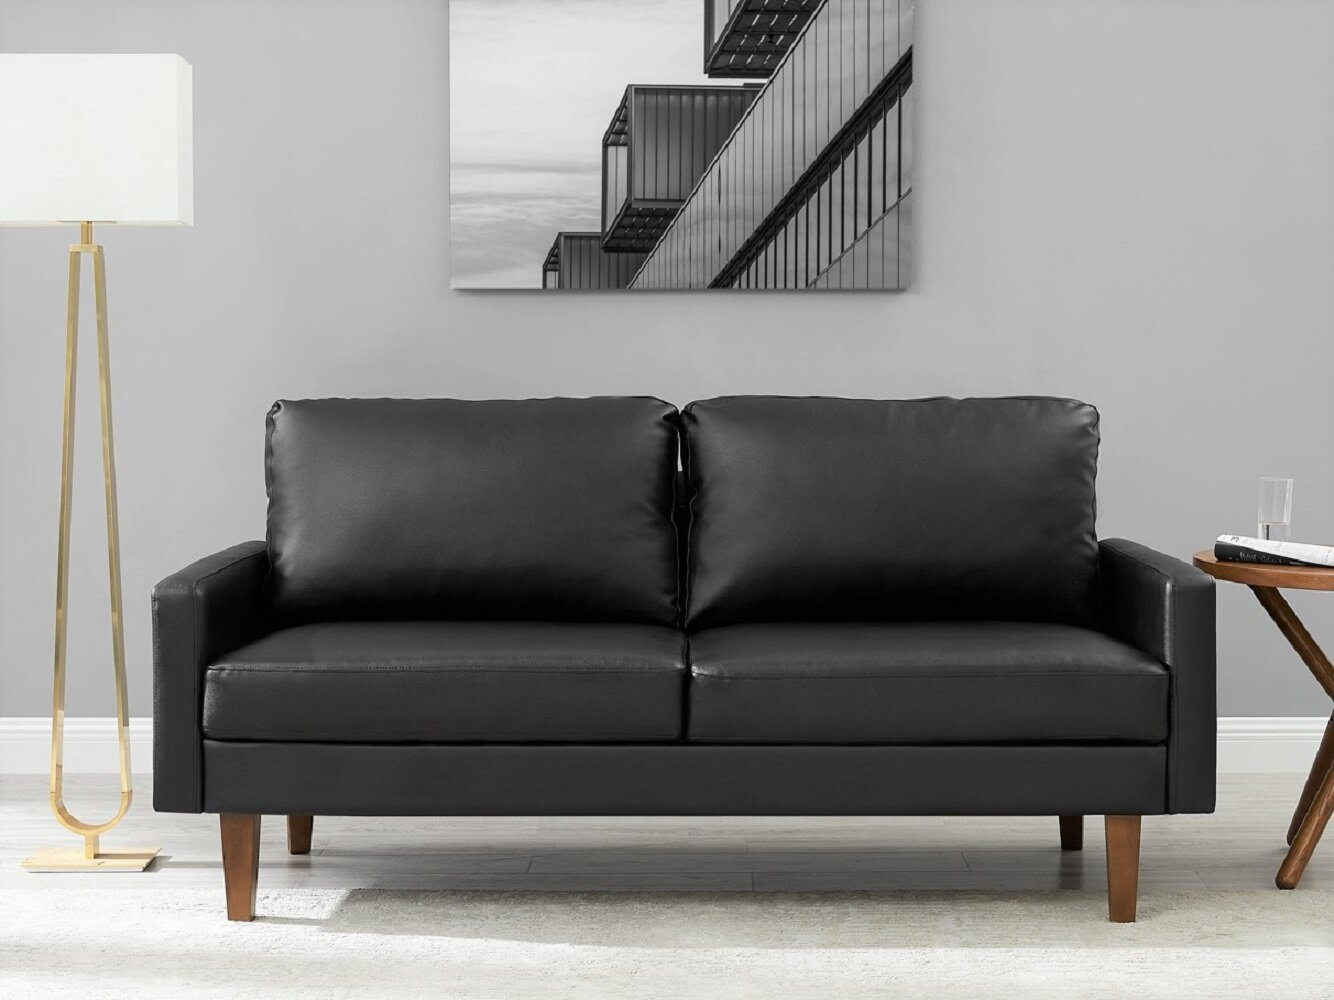 Wrought Studio Piccadilly 69 7 Wide Faux Leather Square Arm Loveseat Reviews Wayfair